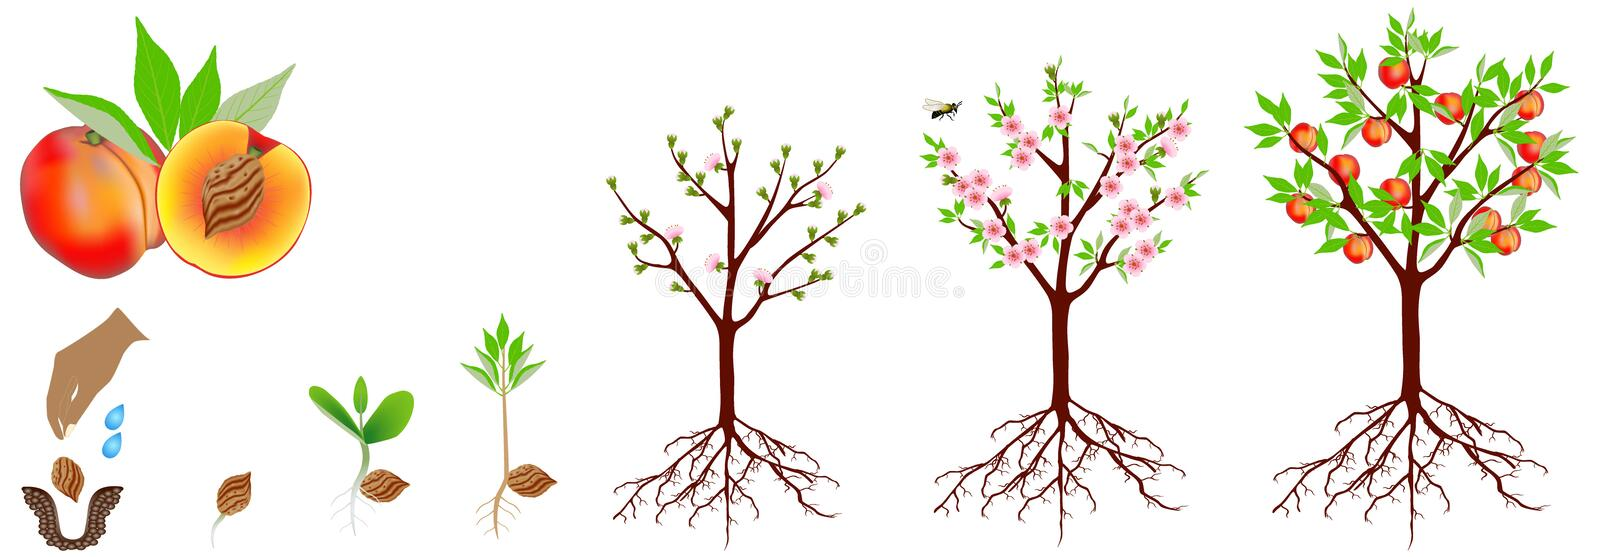 A growth cycle of a peach plant is isolated on a white background. stock image